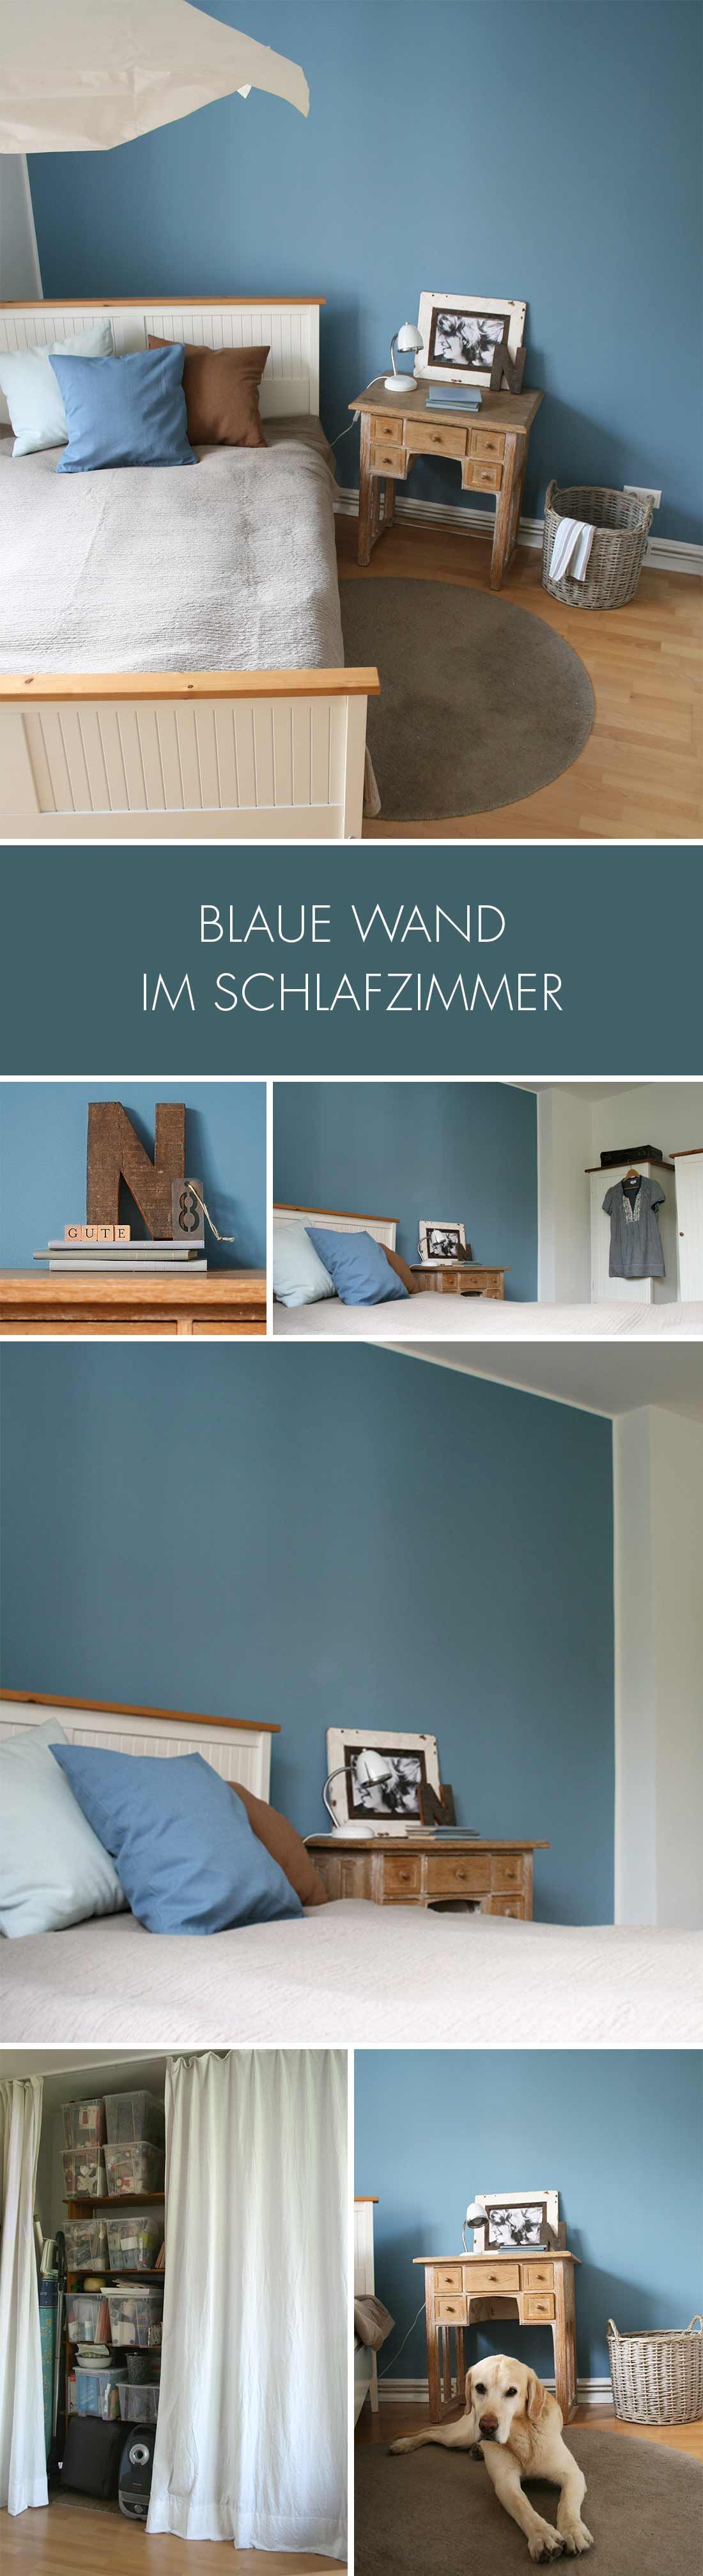 blaue wand im schlafzimmer und wie ich eine praktische abstellkammer versteckt habe mood. Black Bedroom Furniture Sets. Home Design Ideas